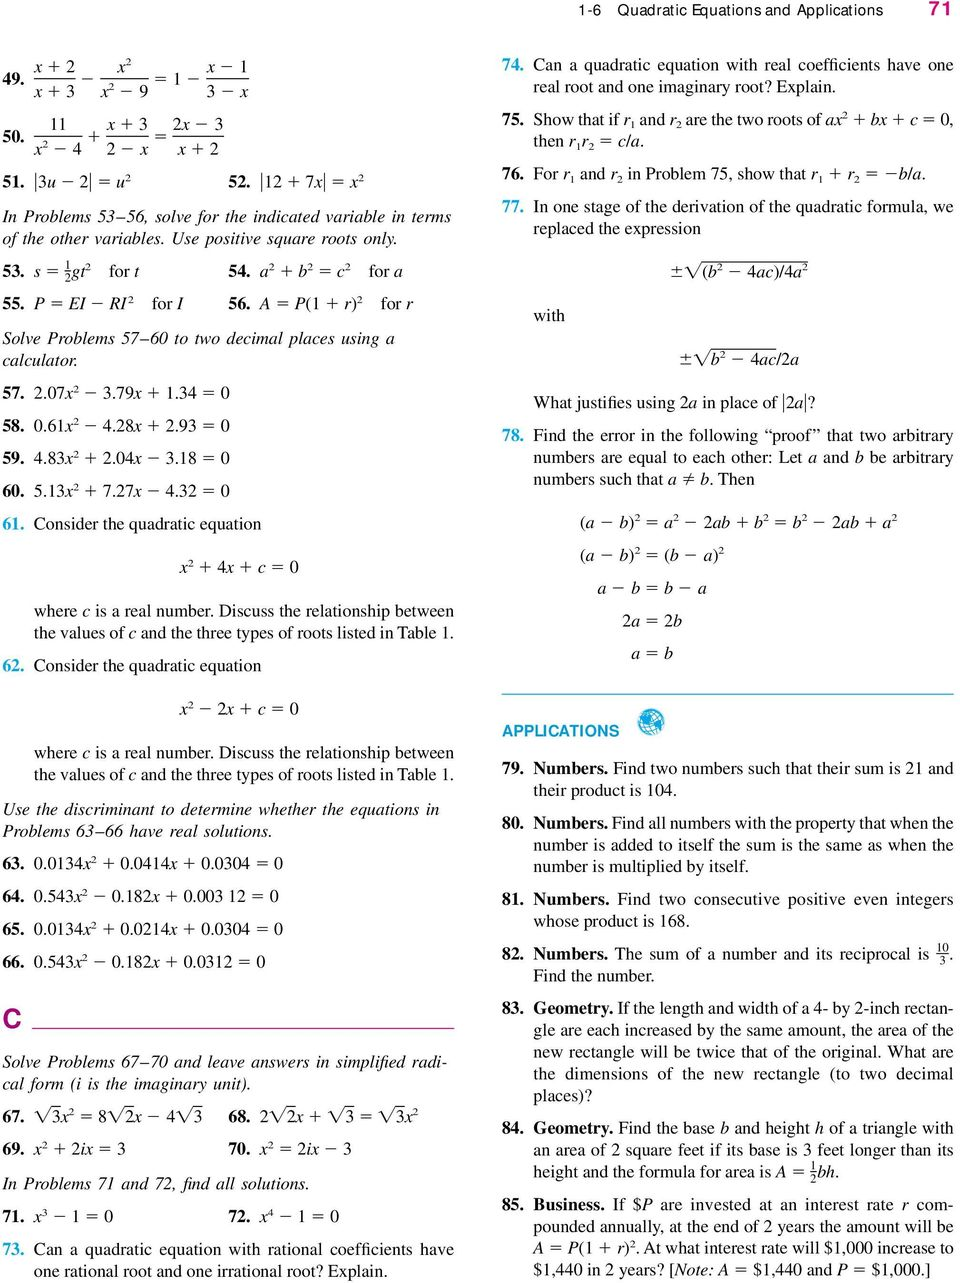 SECTION 1-6 Quadratic Equations and Applications - PDF Free ...